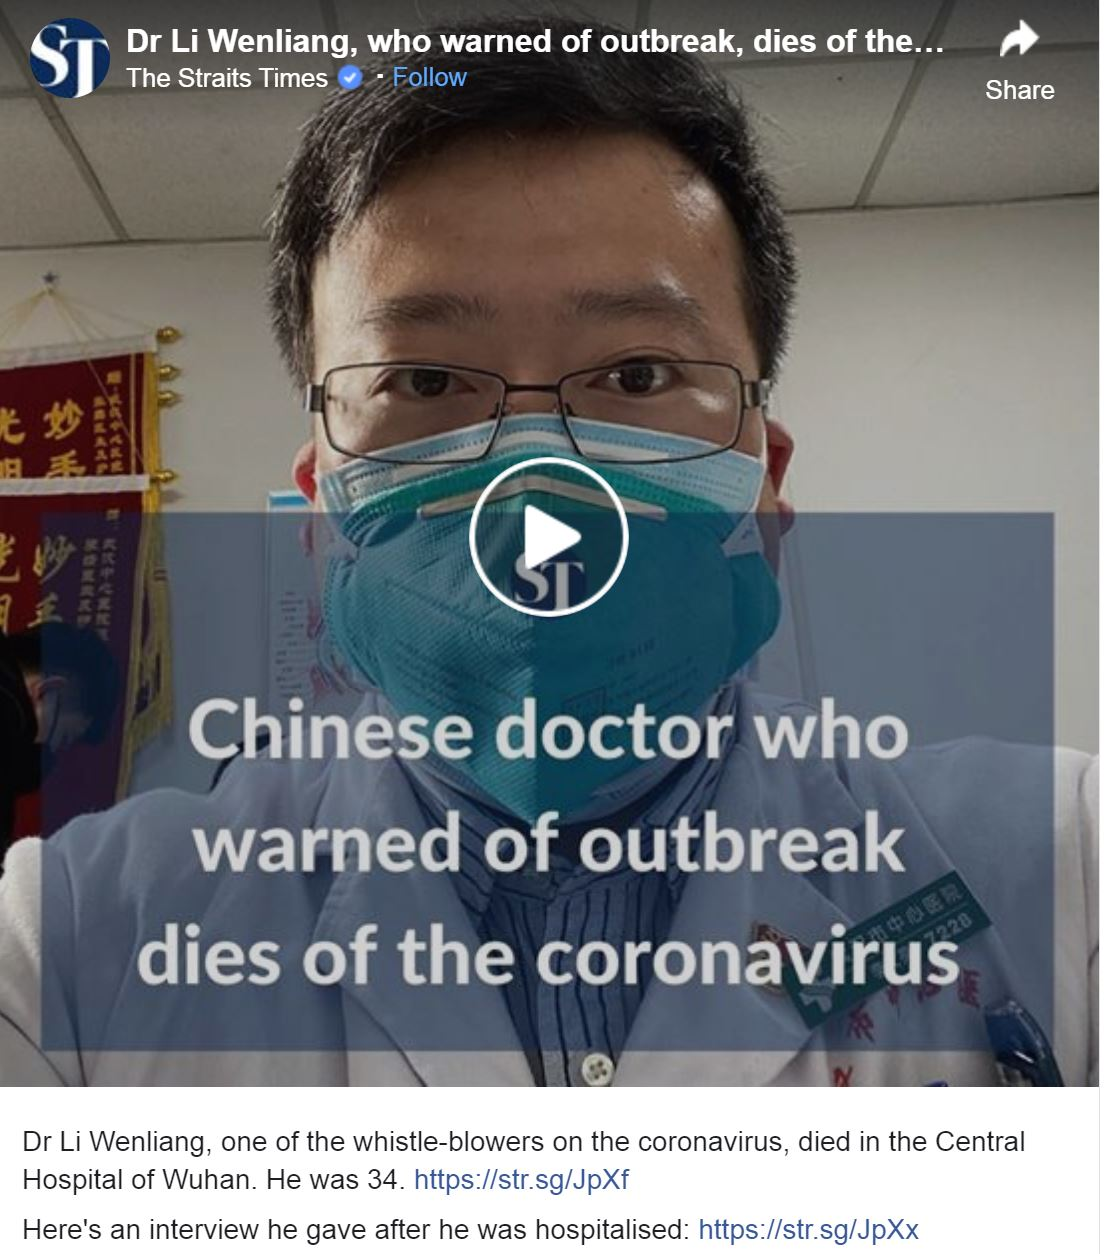 Dr.LiWenliang interview